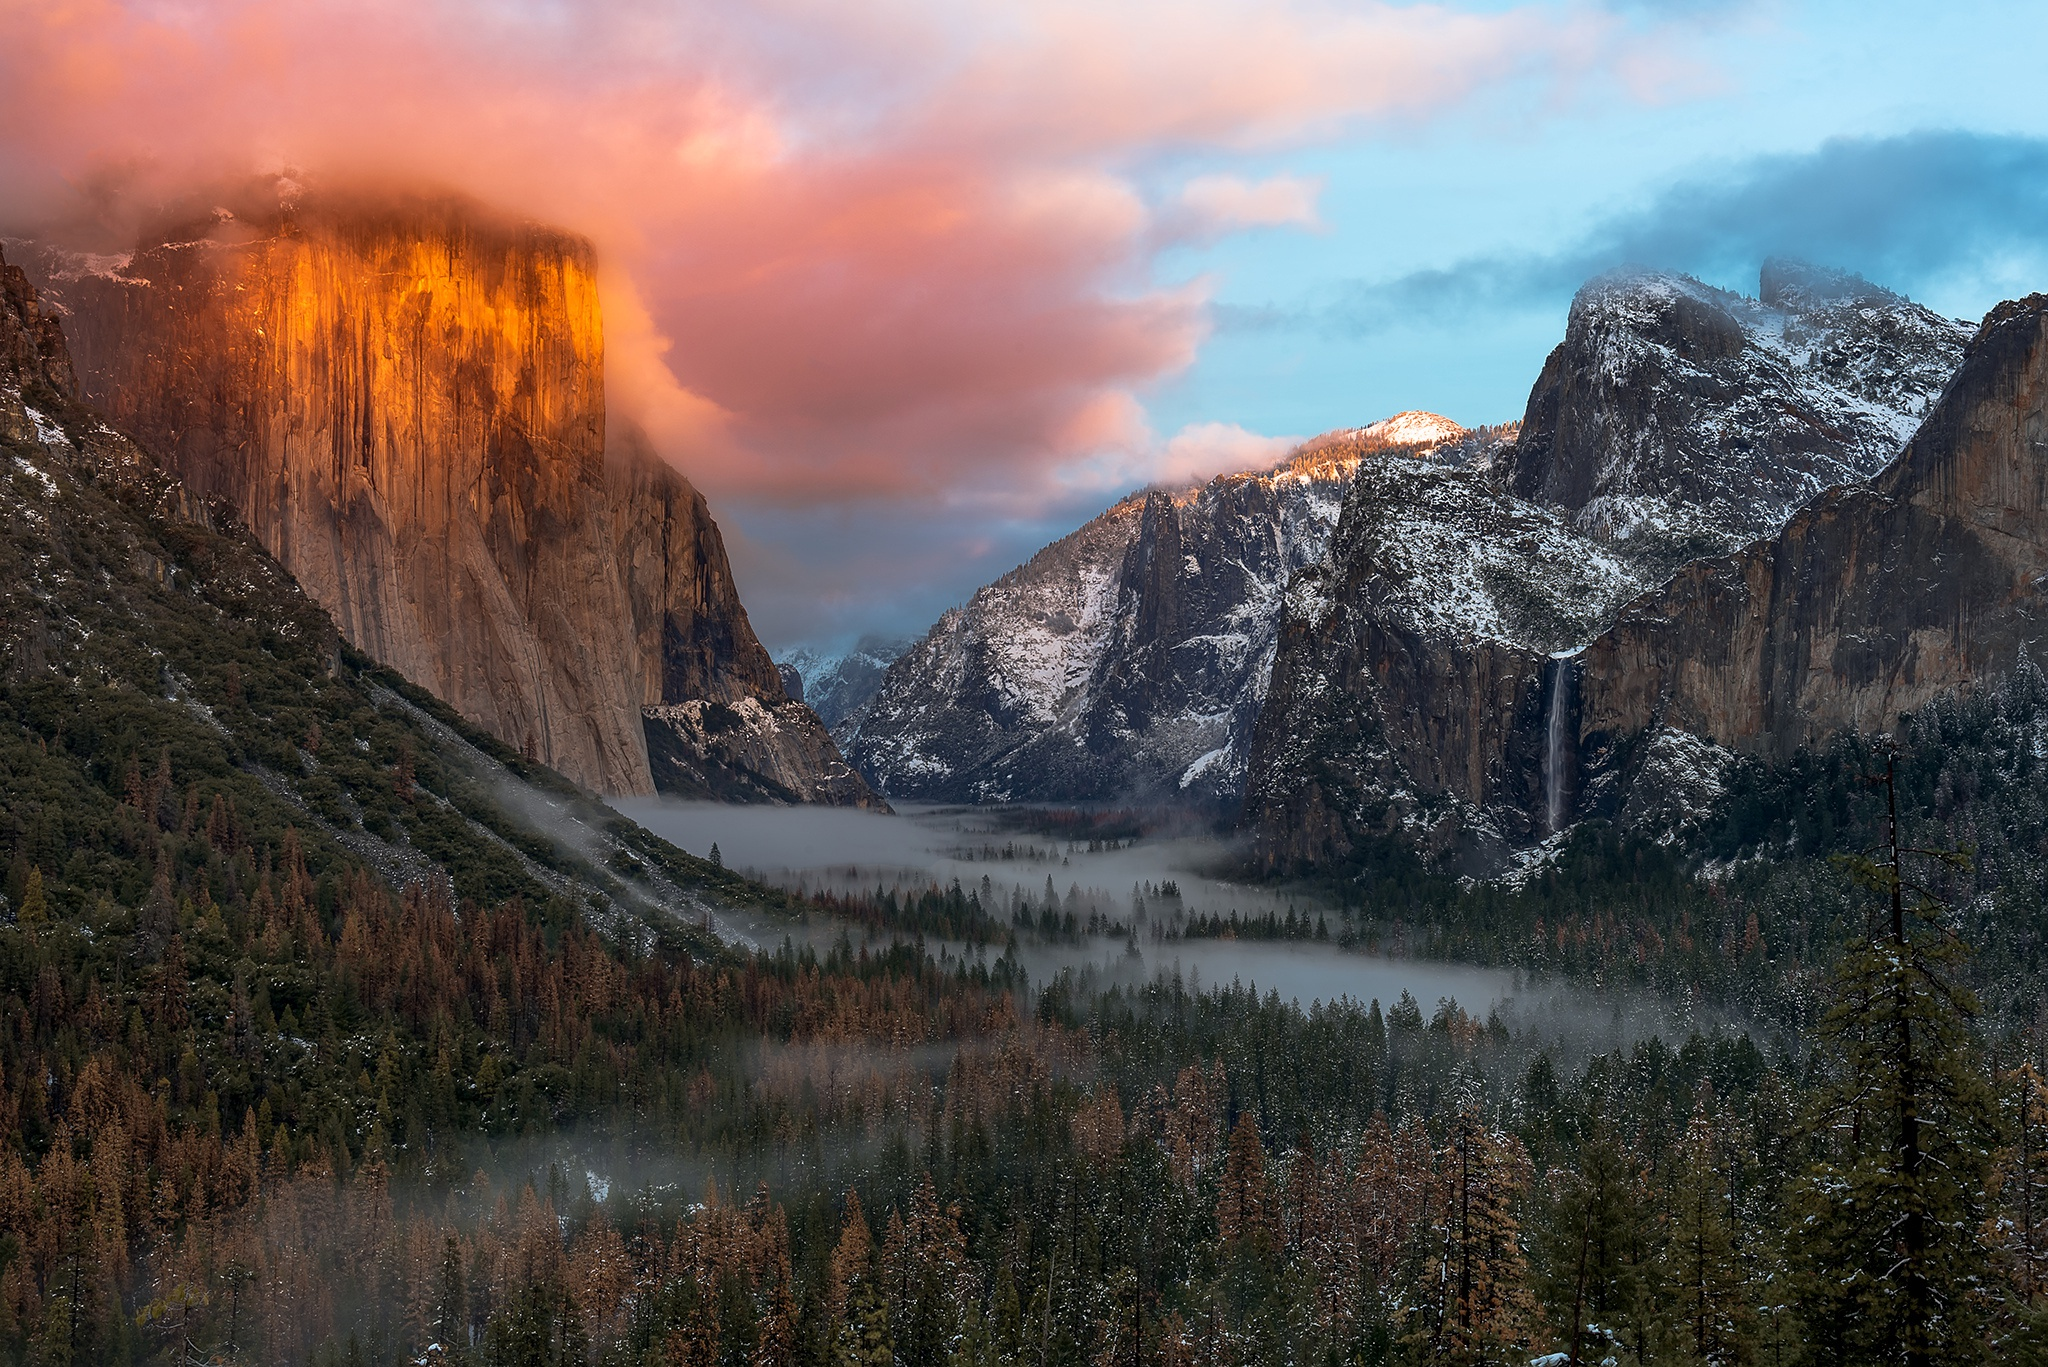 Yosemite national park beautiful hd nature 4k wallpapers - Yosemite national park hd wallpaper ...